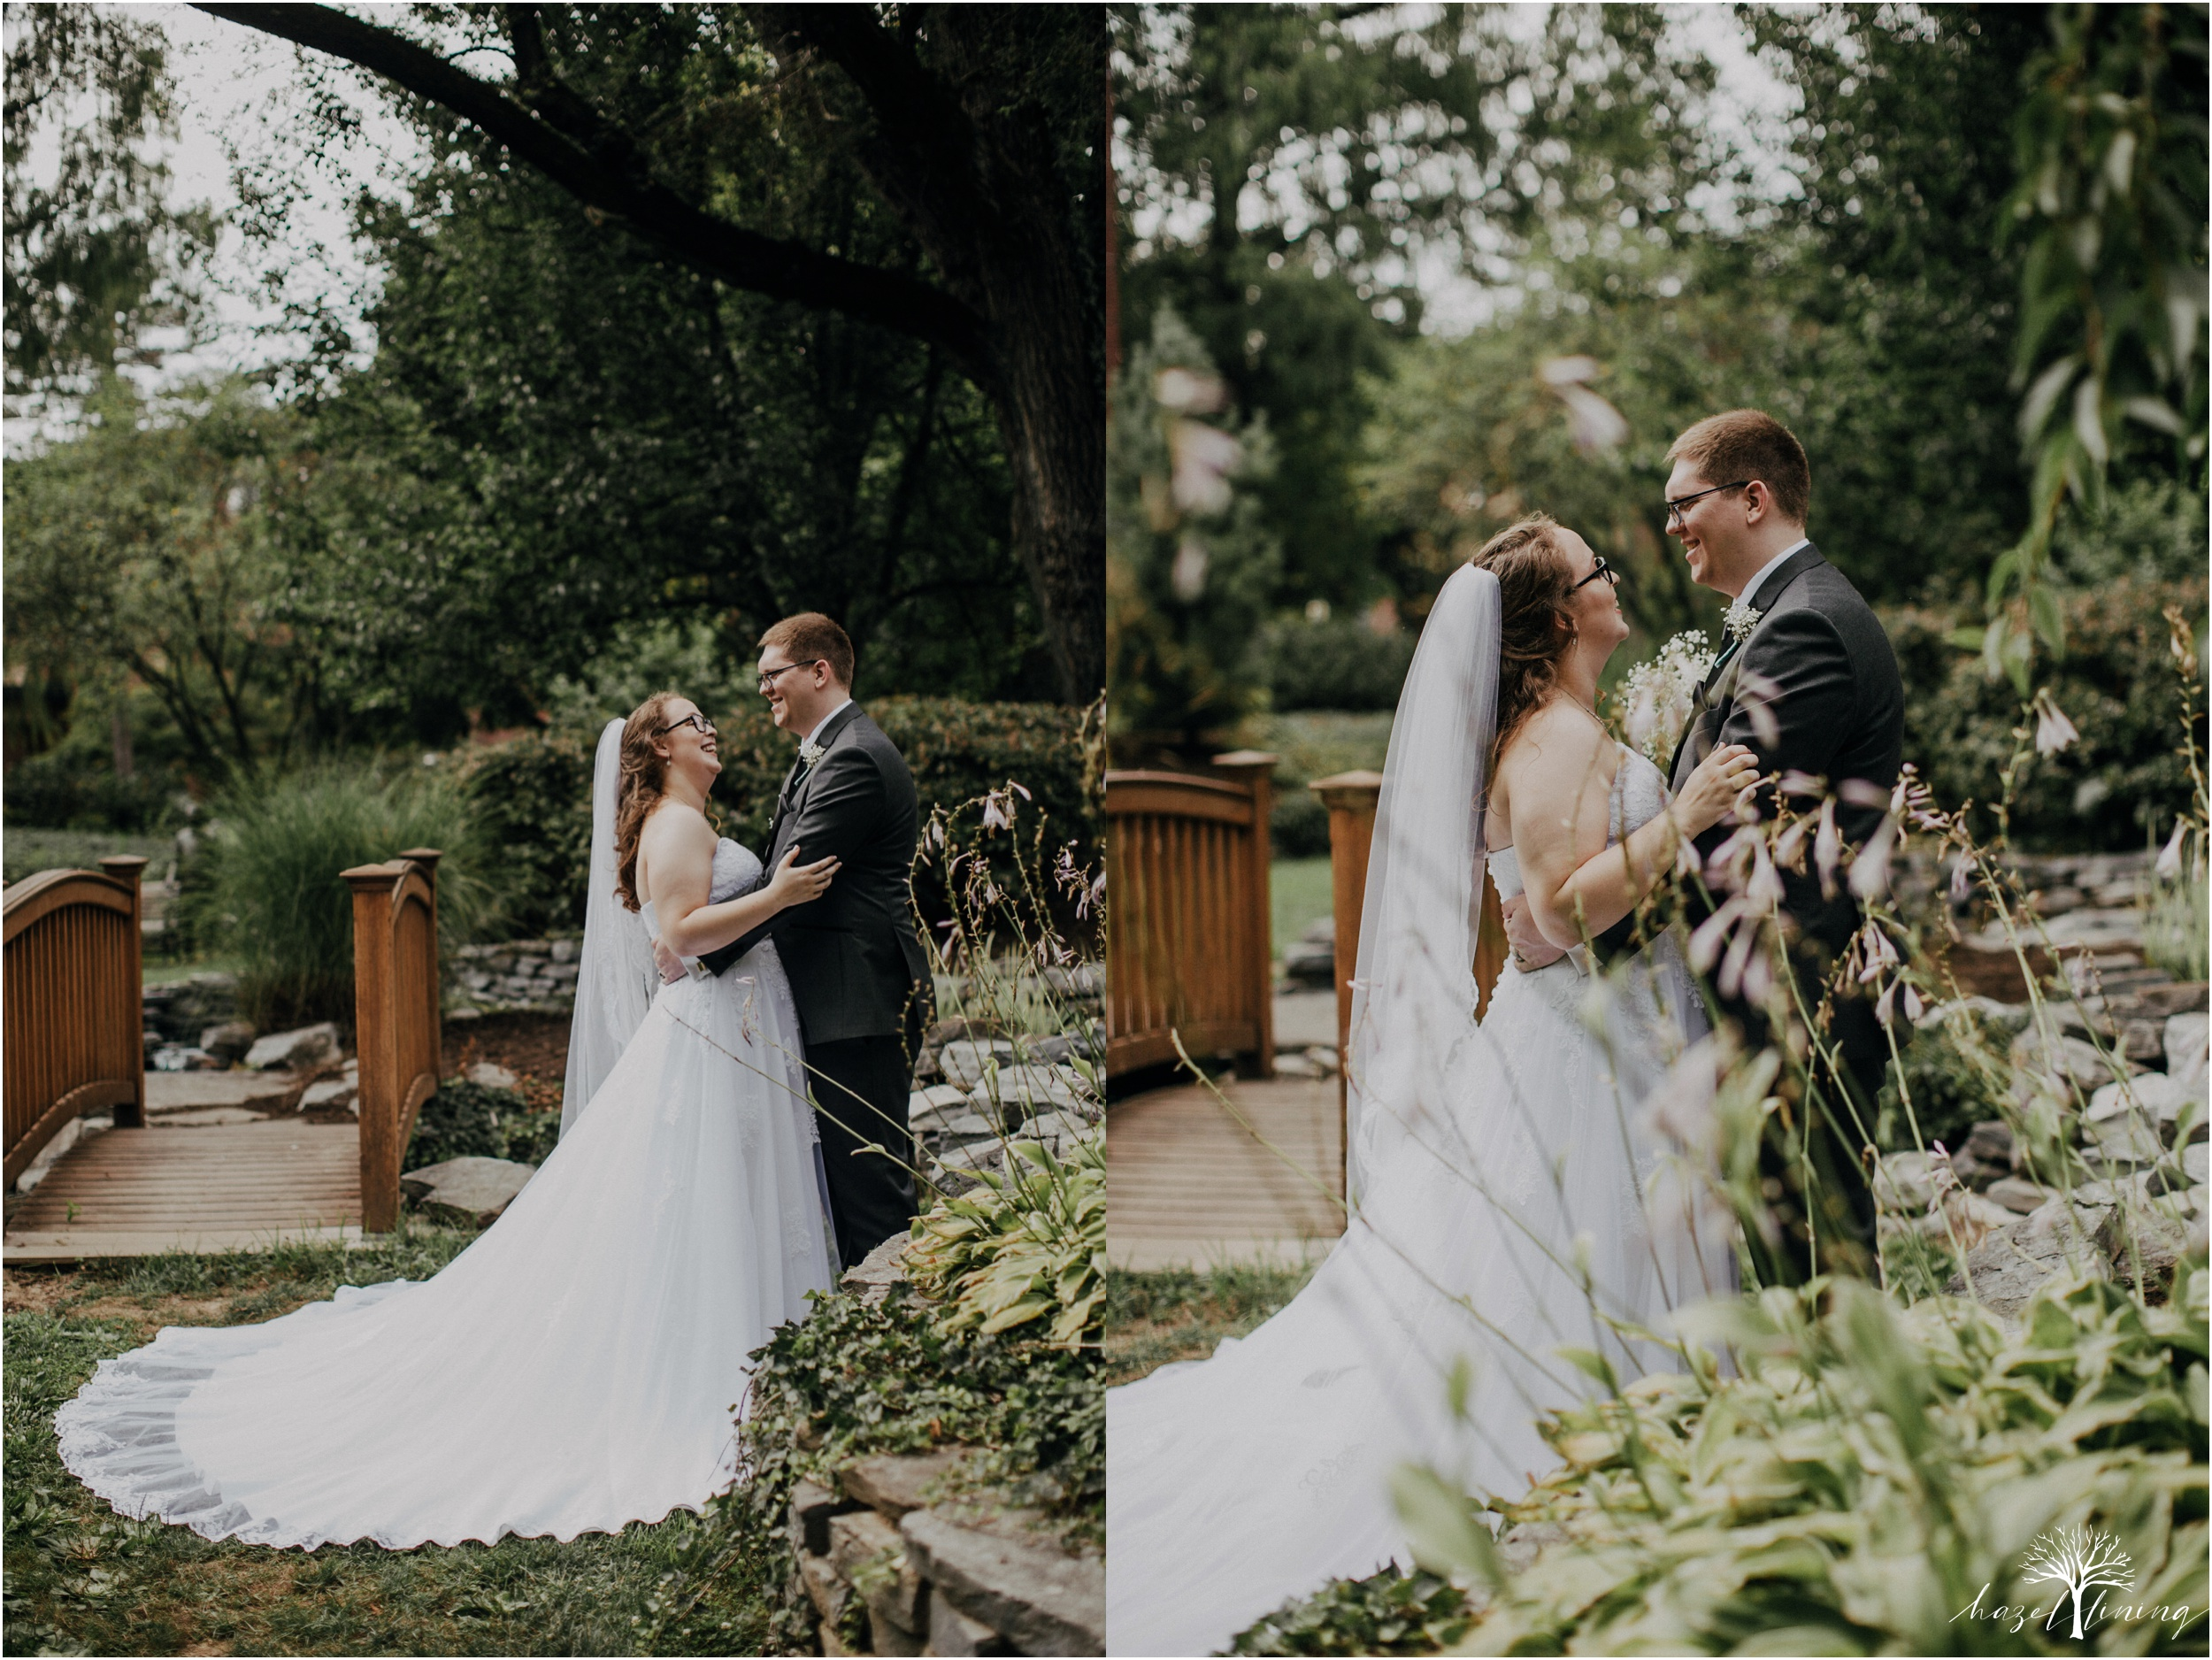 laura-zach-mccaskill-harmony-hall-lebanon-valley-college-summer-wedding-hazel-lining-photography-destination-elopement-wedding-engagement-photography_0087.jpg